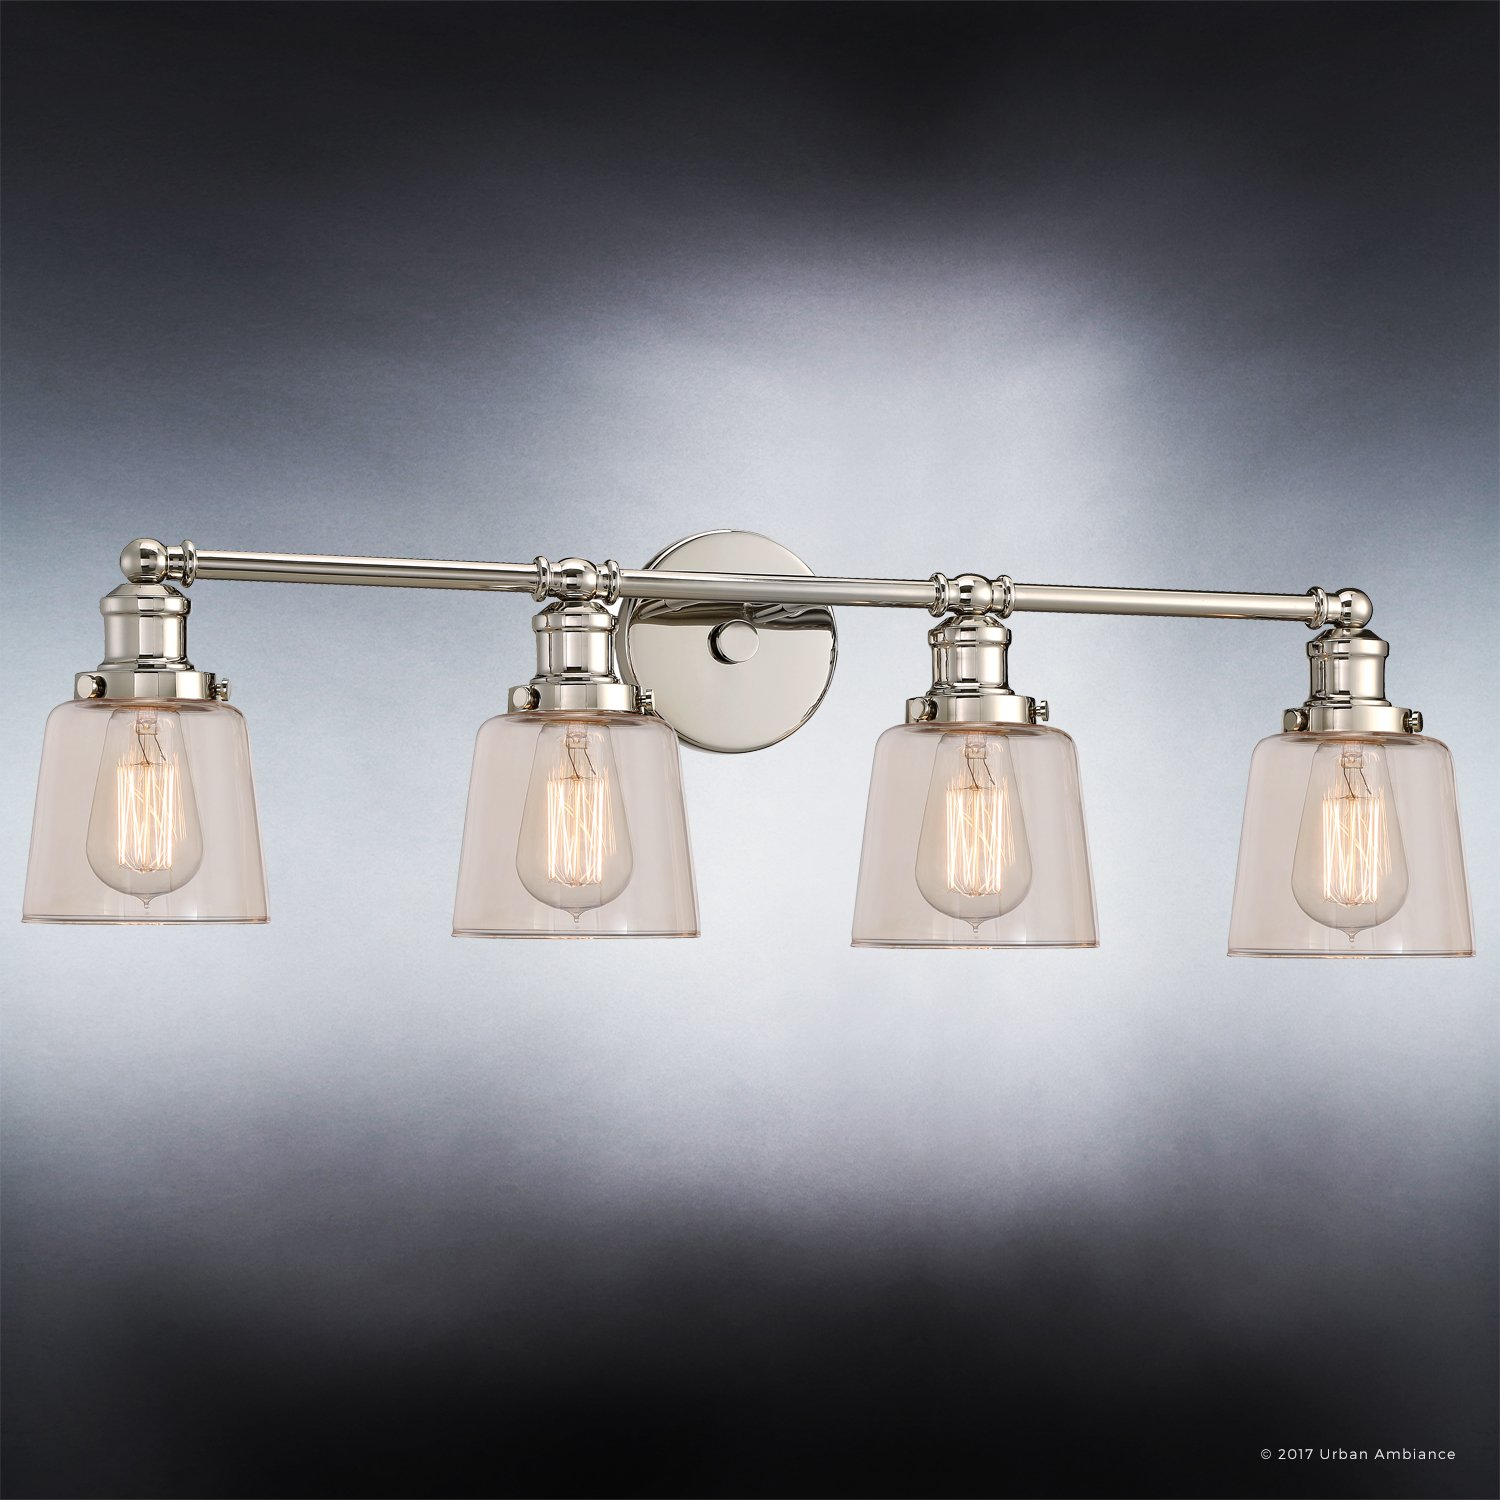 Luxury Industrial Chic Bathroom Vanity Light, Large Size: 9''H x 31.5''W, with Modern Style Elements, Nostalgic Design, Polished Nickel Finish and Light Champagne Glass, UQL2682 by Urban Ambiance by Urban Ambiance (Image #3)